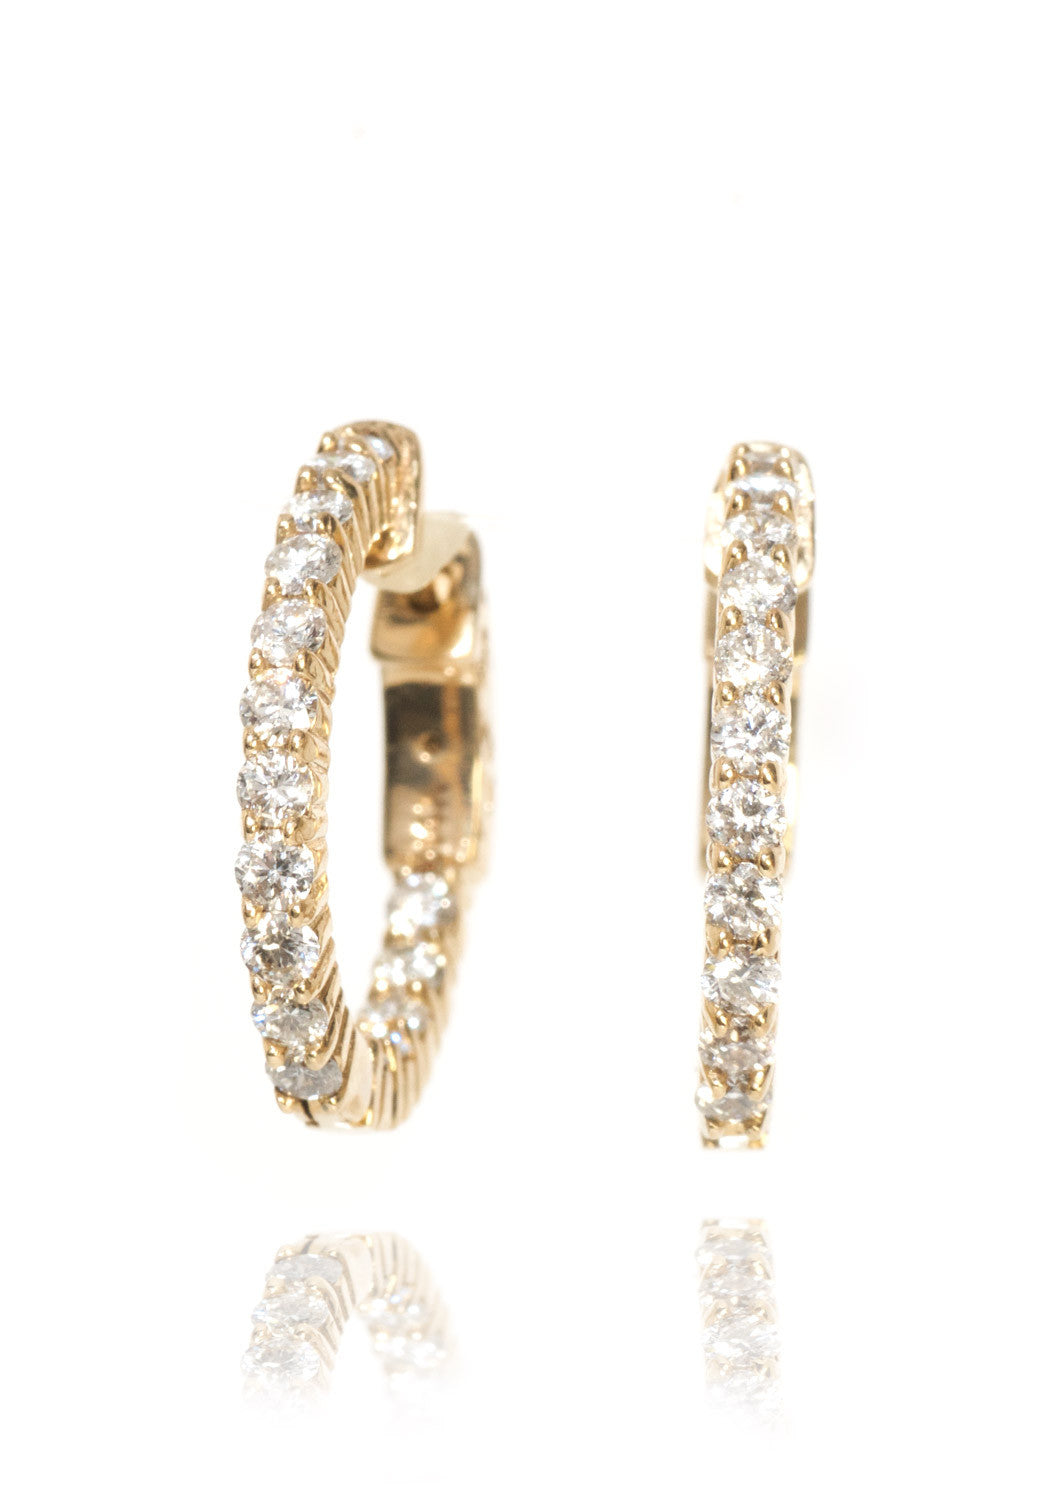 Oster Diamond Hoop Earrings in Yellow Gold